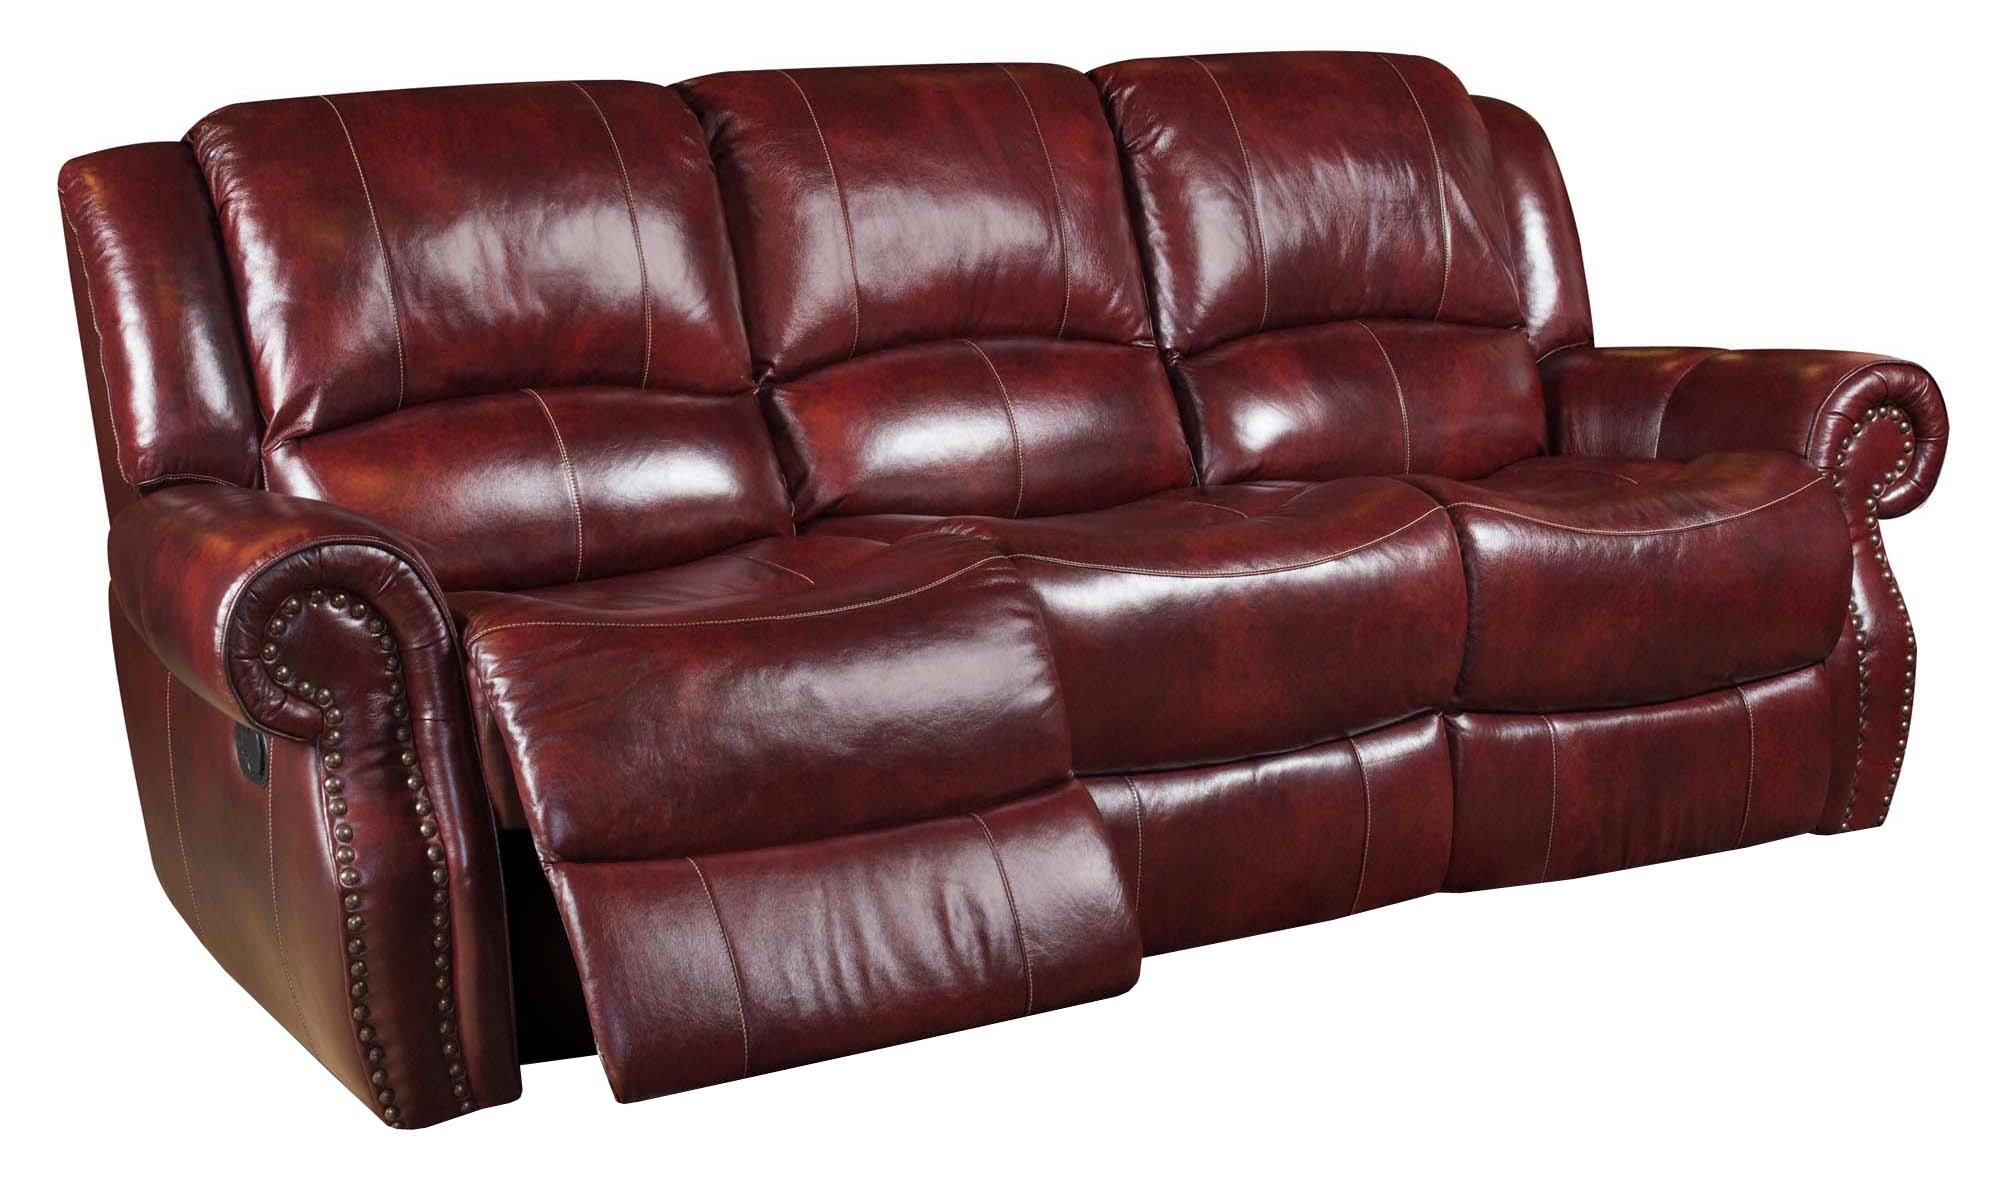 alec leather sofa collection best quality slipcovers corinthian alexander 99901 30 reclining